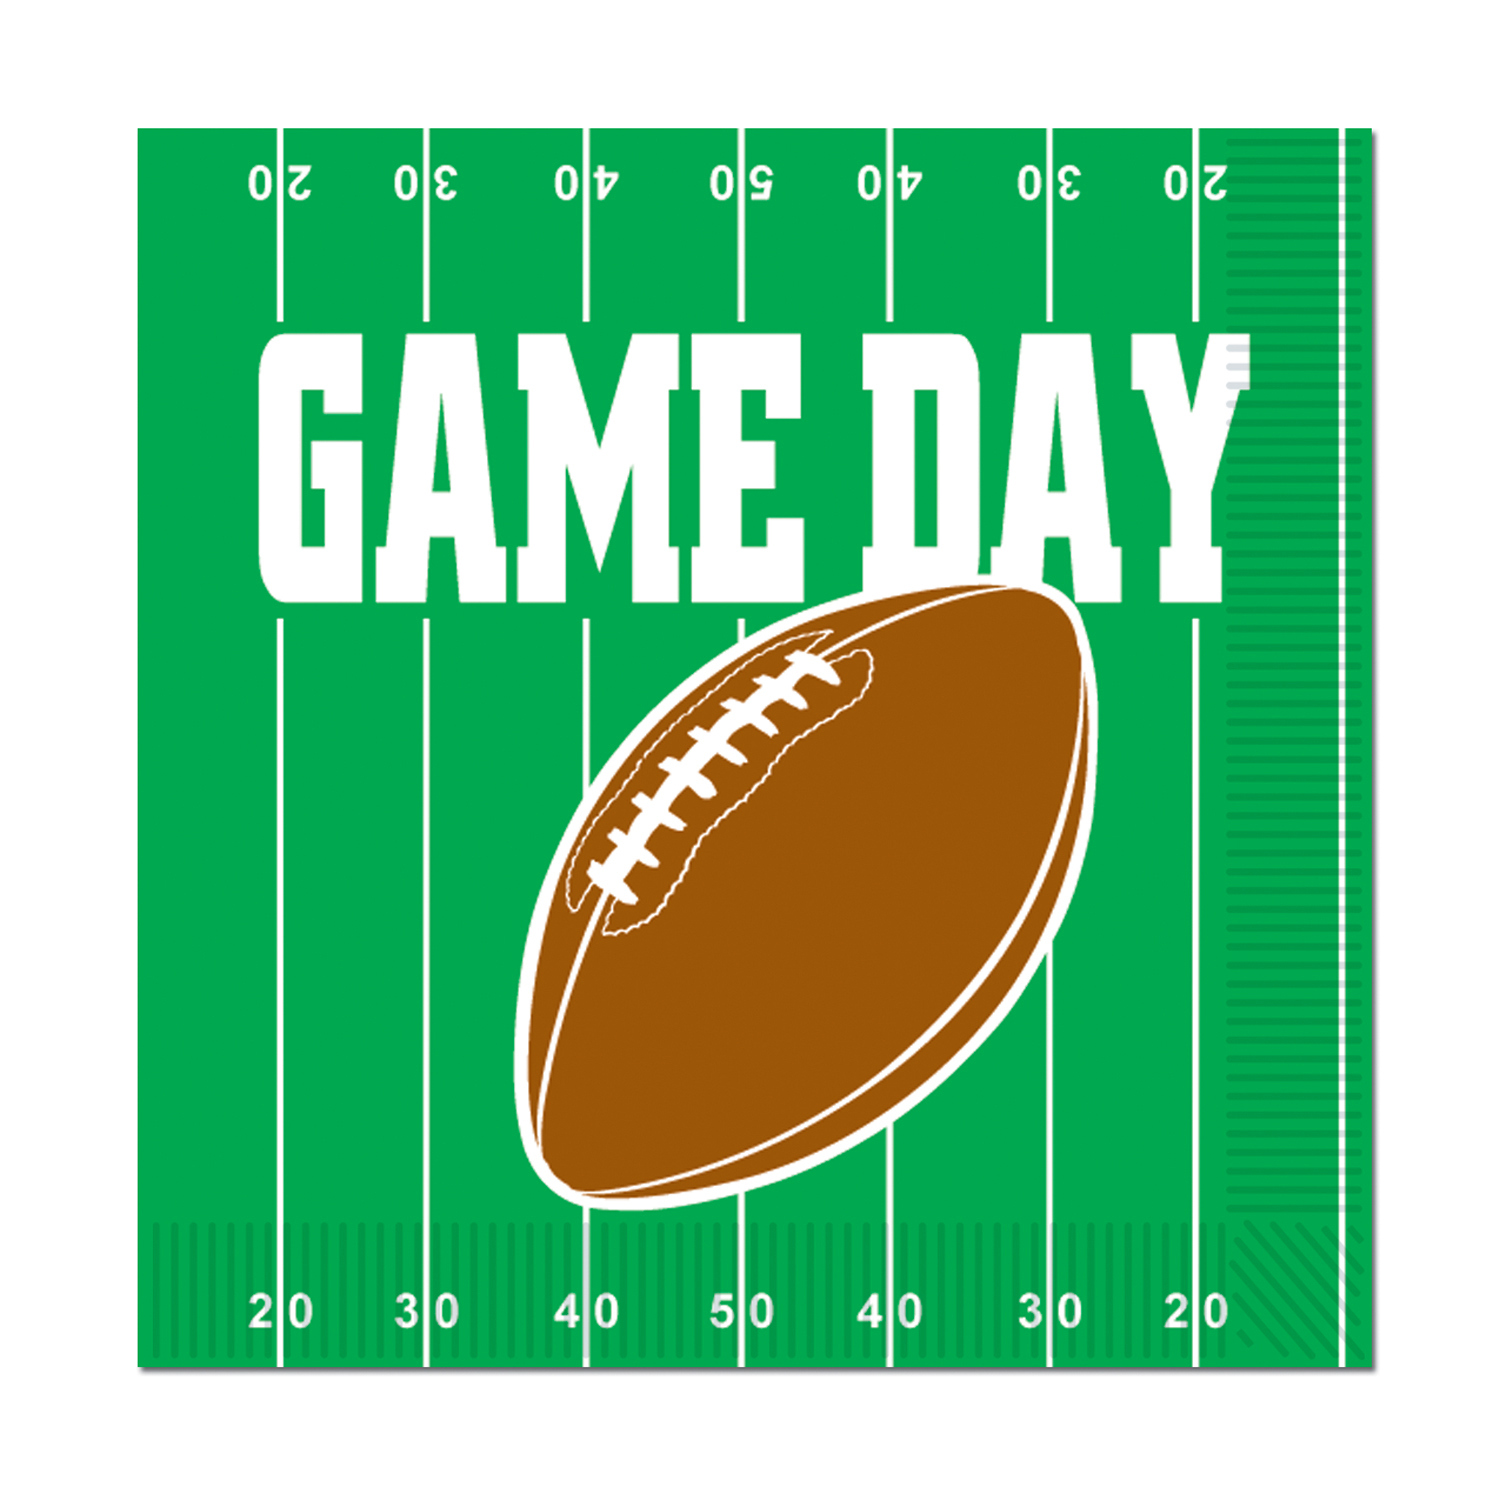 Game Day Football Luncheon Napkins (Pack of 192) Game Day Football Luncheon Napkins, decoration, football, superbowl, big game, wholesale, inexpensive, bulk